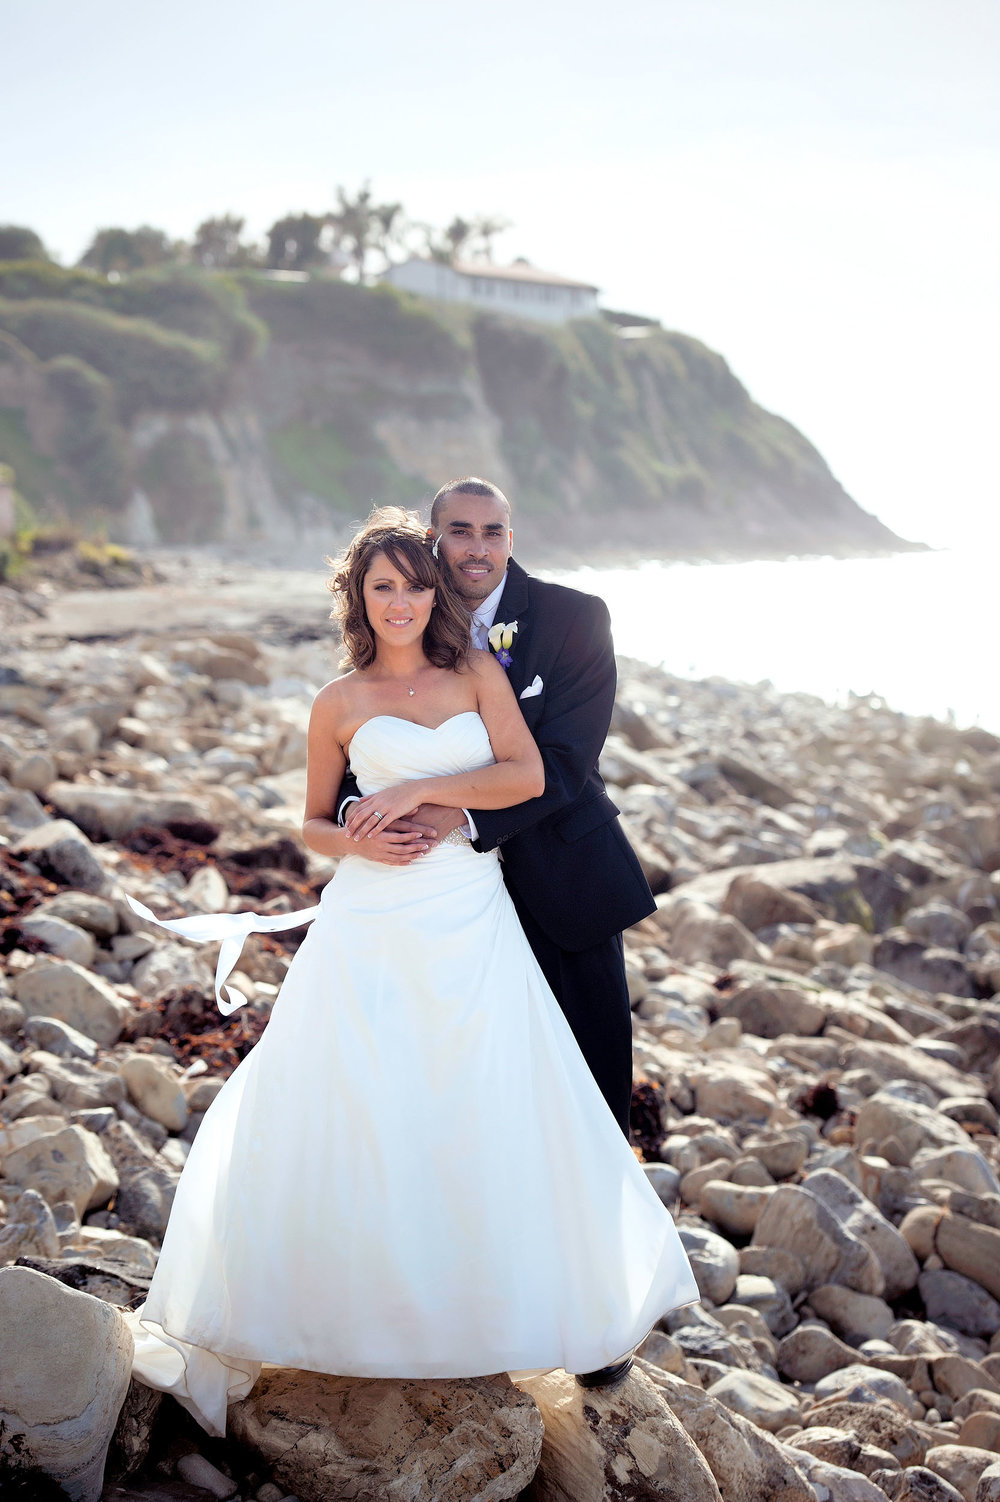 Bride and groom on the rocky beach of Malaga Cove in Rancho Palos Verdes Peninsula.